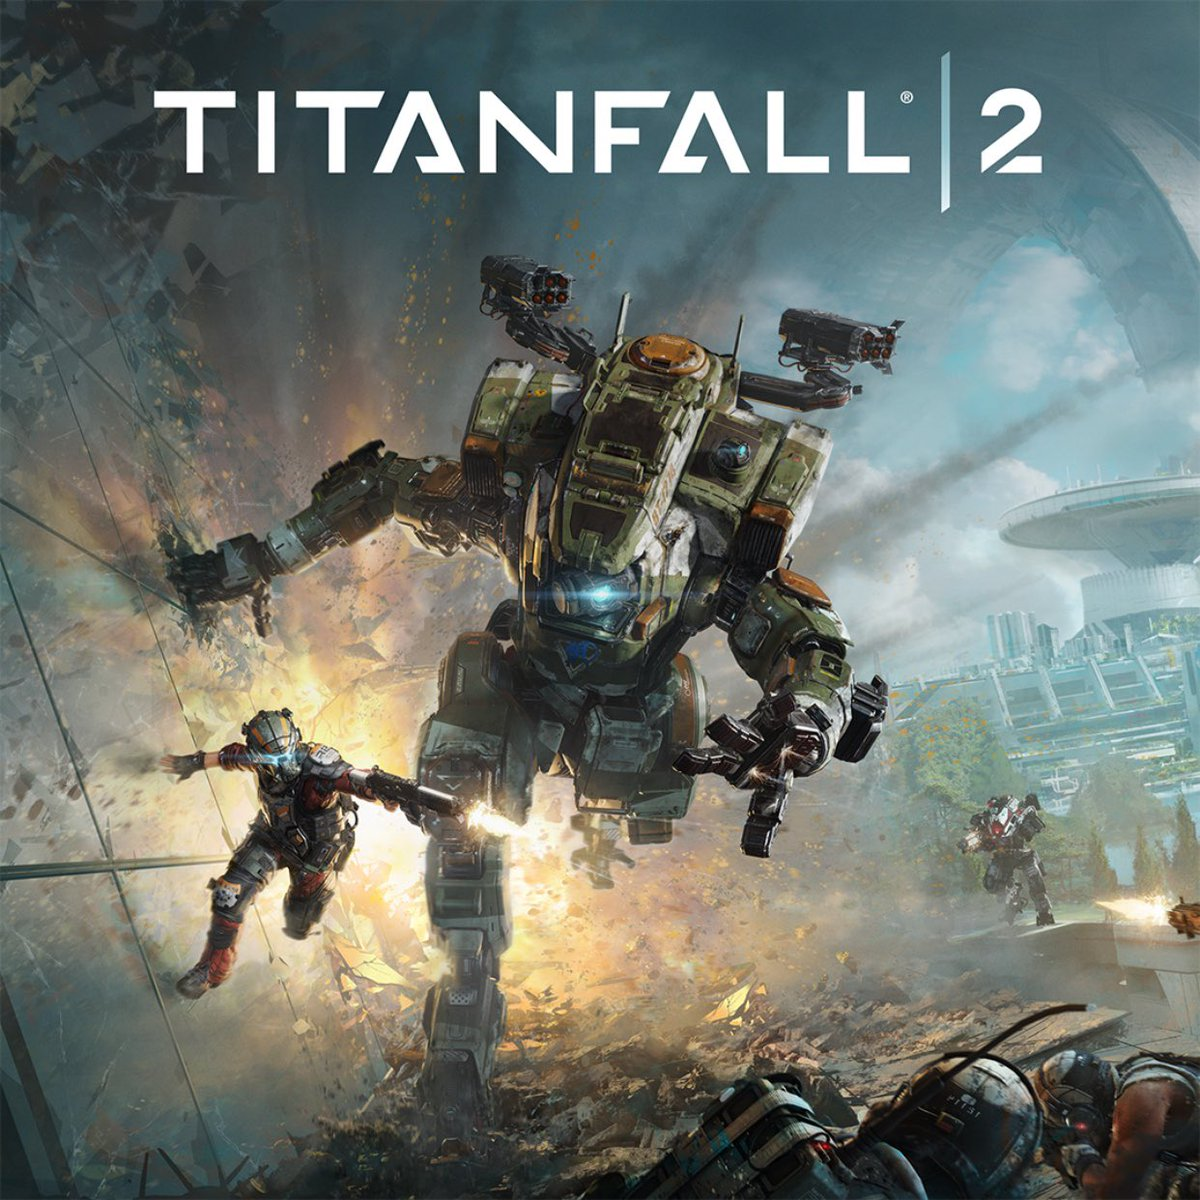 #Titanfall2  (@PlayStation) #PS4 #PS4Pro (@Xbox) #XboxOne #XboxOneX https://t.co/Q0SA2n9J68